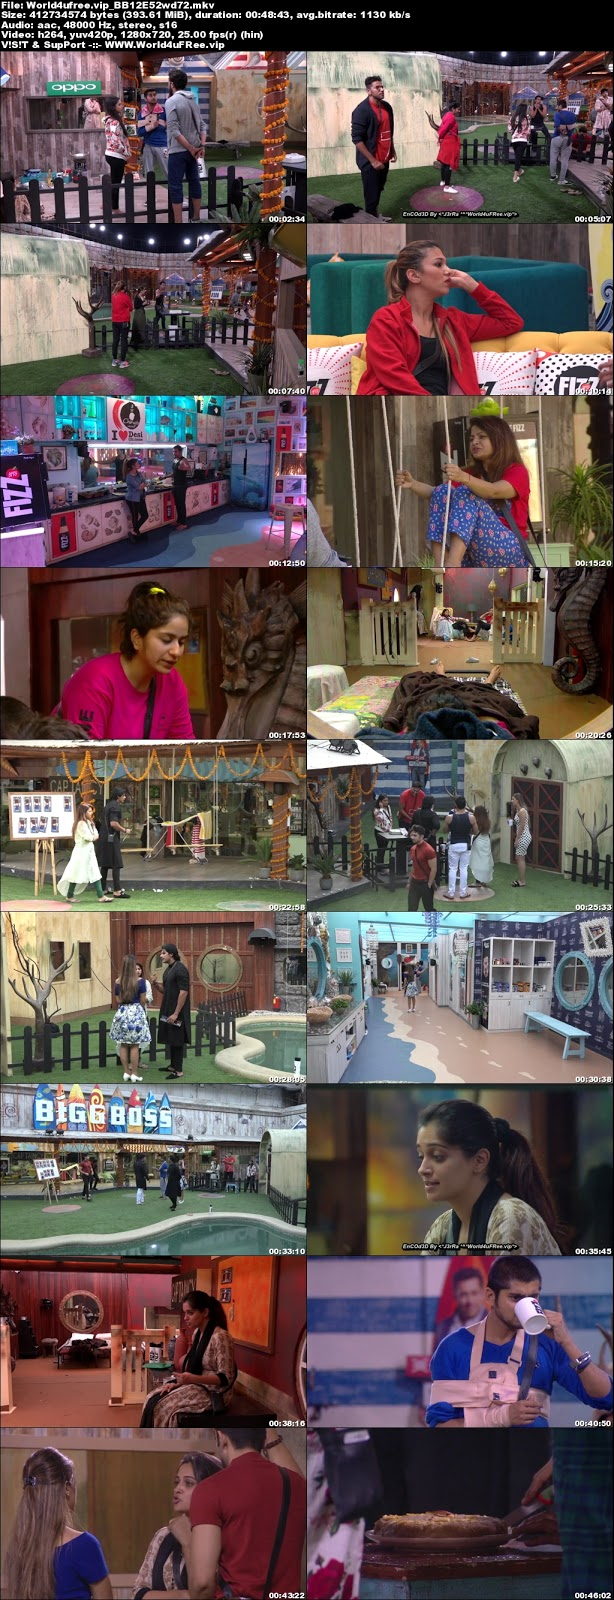 Bigg Boss 12 Episode 52 07 November 2018 720p WEBRip 400Mb x264 world4ufree.fun tv show Episode 50 05 november 2018 world4ufree.fun 300mb 250mb 300mb compressed small size free download or watch online at world4ufree.fun